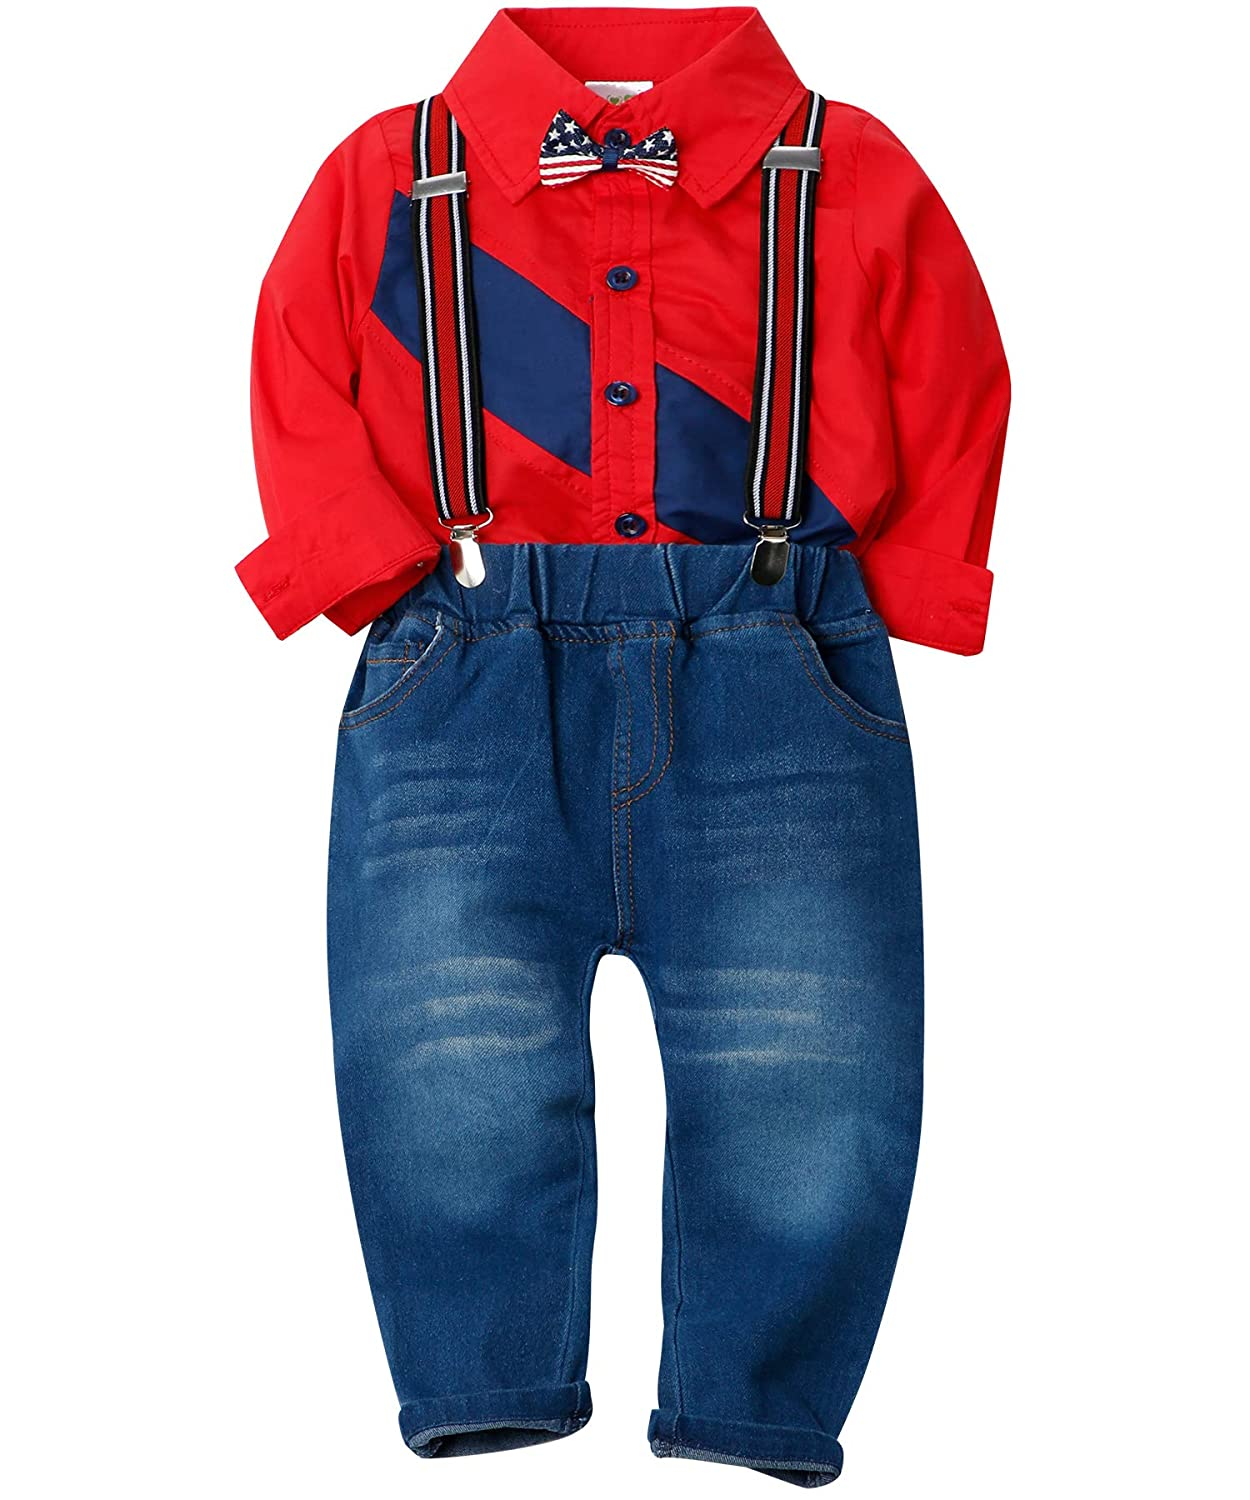 Suspenders Jeans Pants Toddler Boy Gentleman Party Wedding Outfits Suits ZOEREA Boys Clothes Sets Bow Ties Shirts